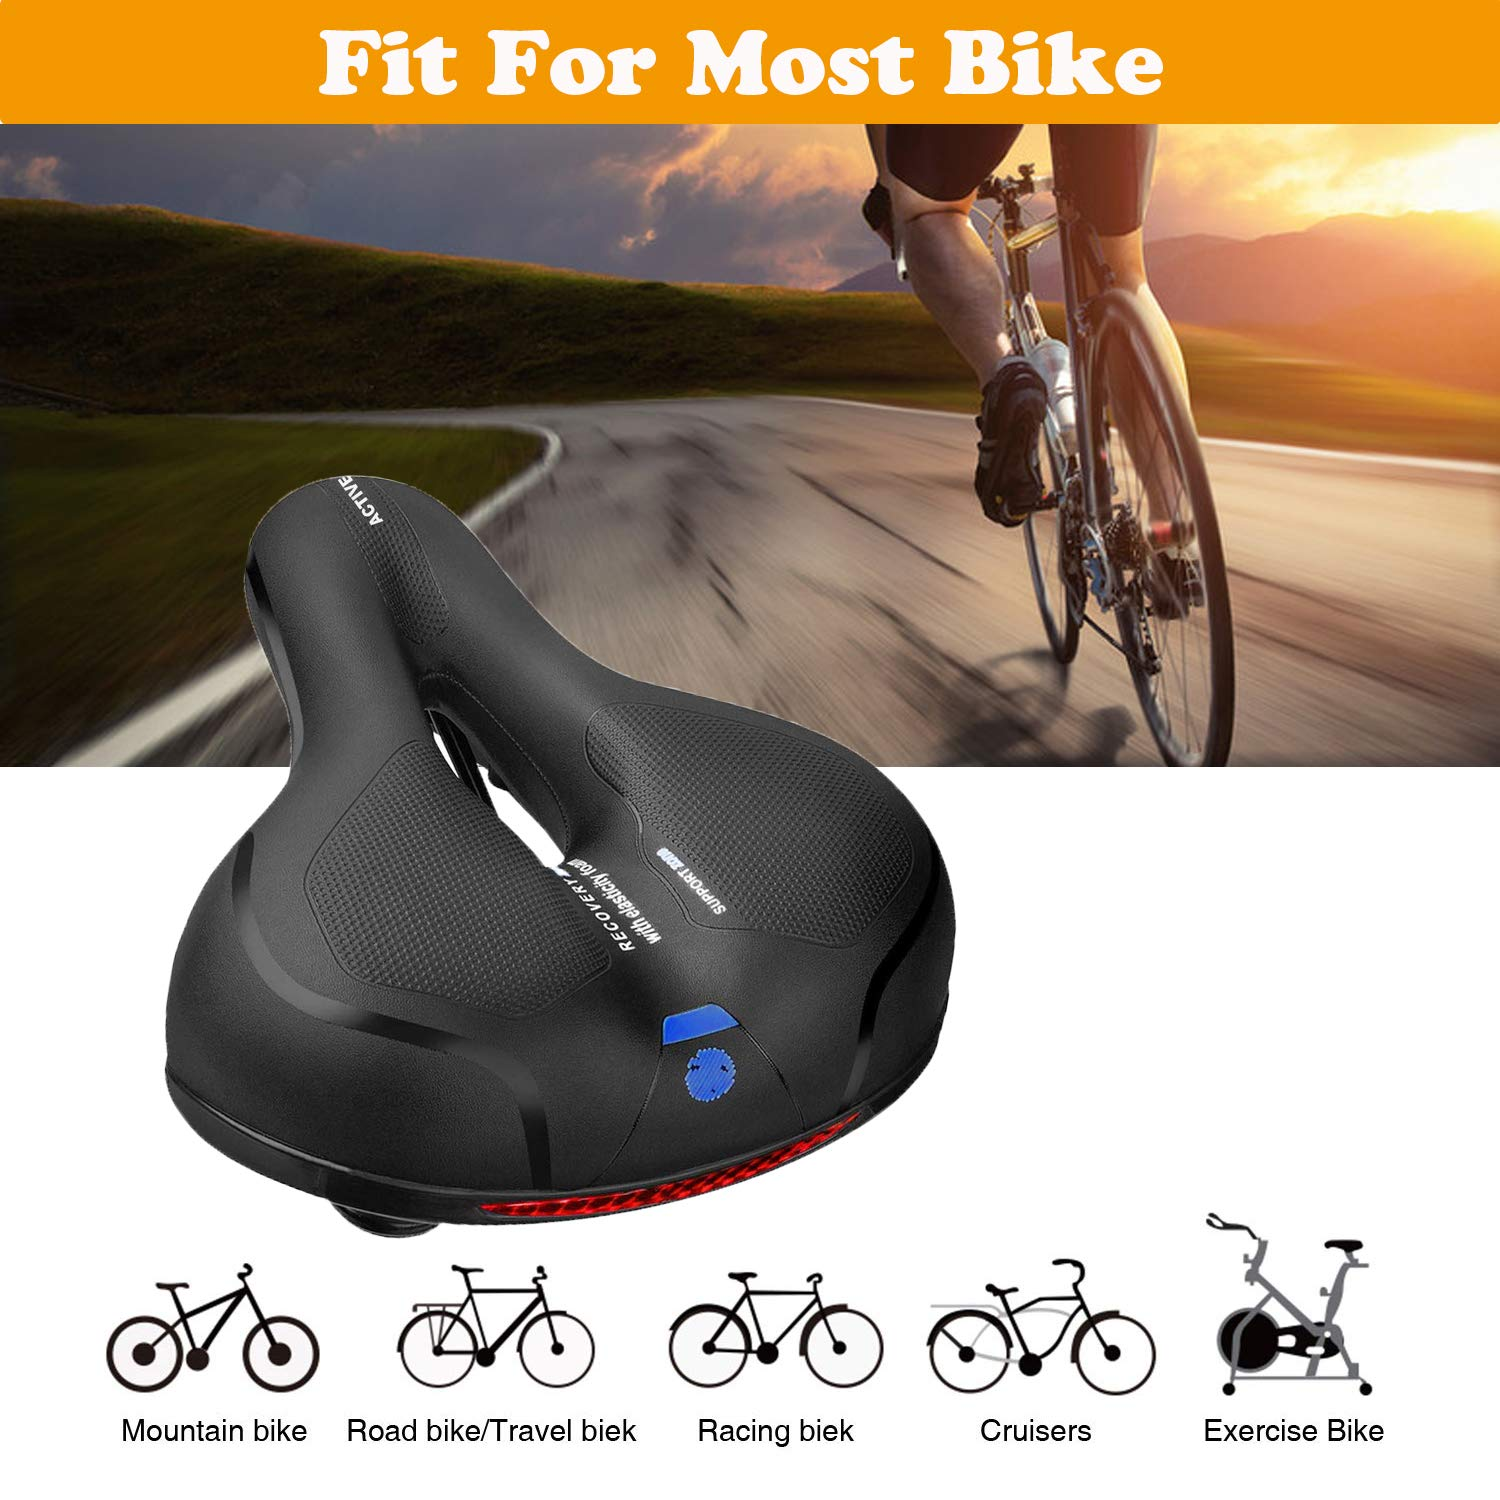 MSDADA Comfortable Bike Seat-Padded Soft BikeSeatCushion Memory Foam Waterproof Wide Bike Saddle with Dual Shock Absorbing Rubber Balls Universal Fit for Indoor/Outdoor Bikes with Reflective Strip by MSDADA (Image #5)